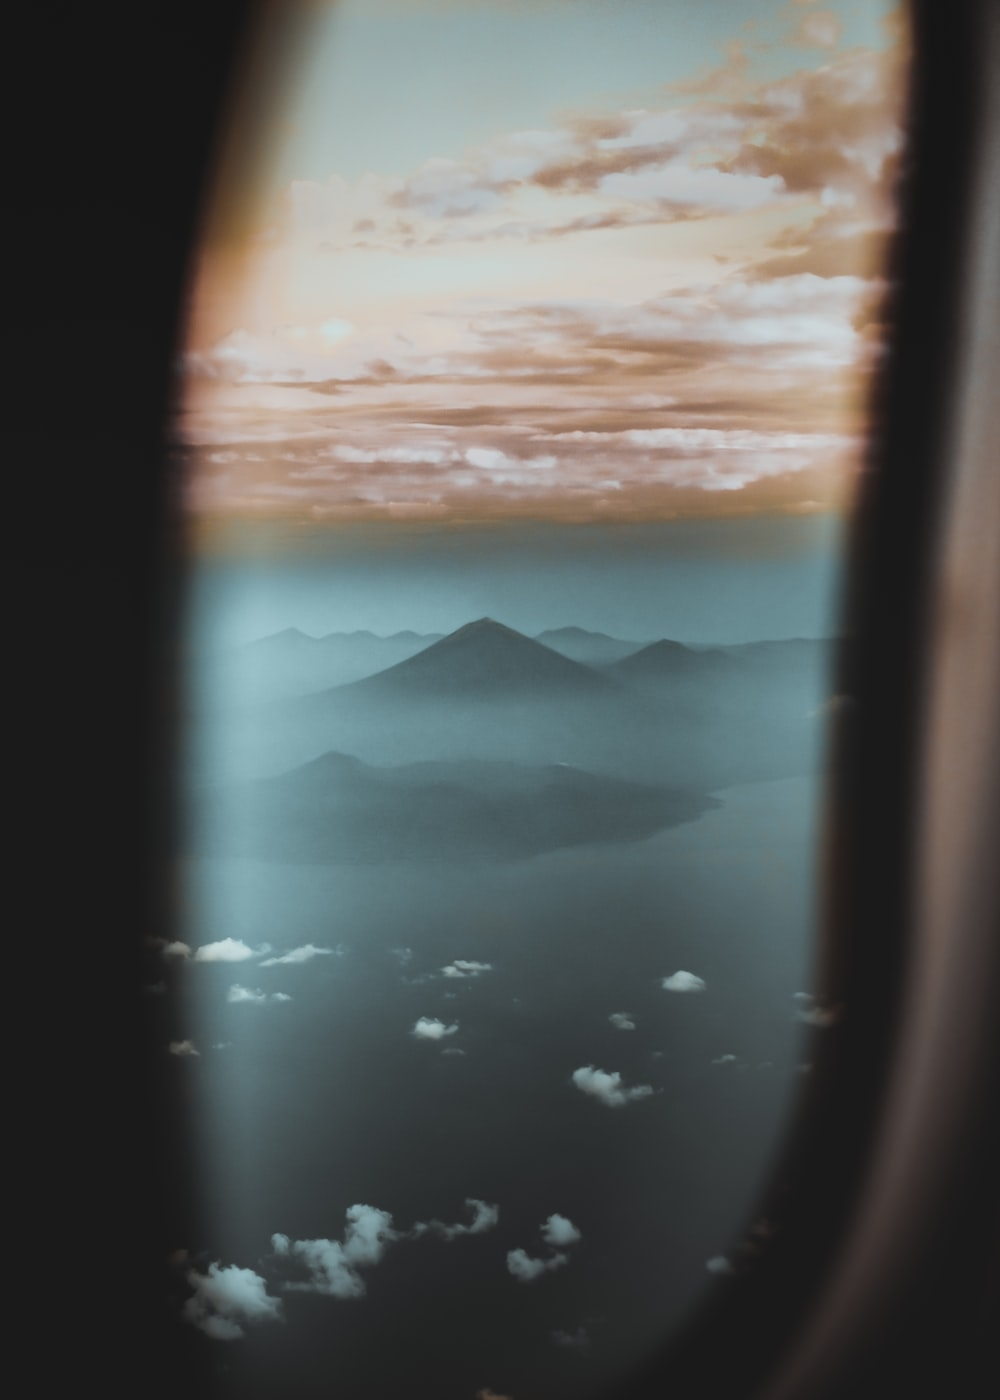 airplane window view of mountains